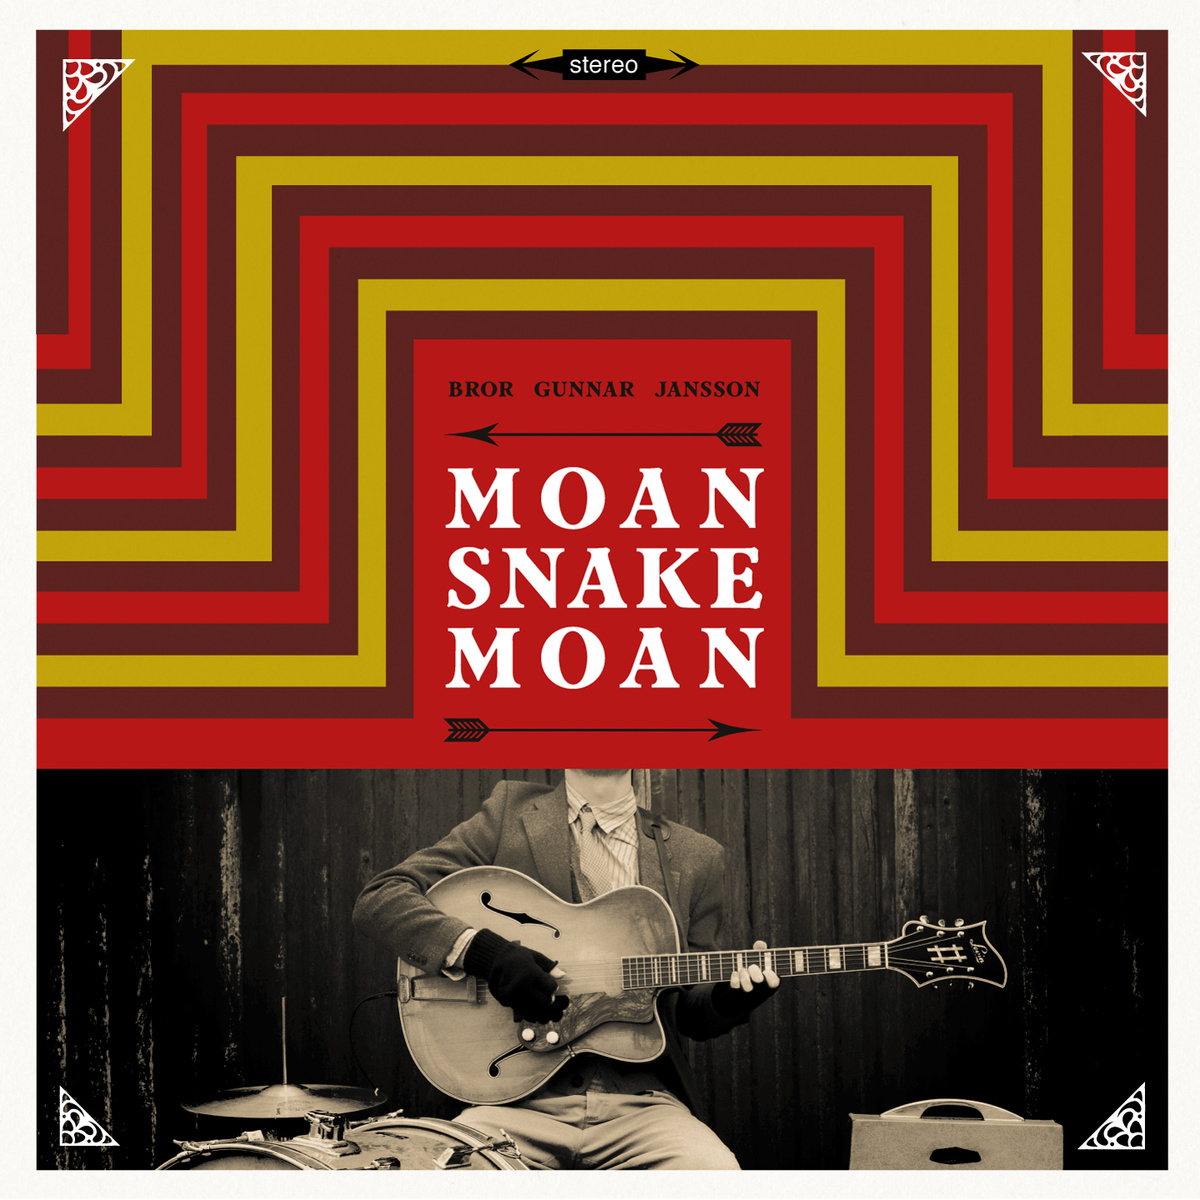 A one-man-band from Sweden, a sleek drugstore cowboy, the missing link between Lightnin' Hopkins and Kopparmärra. There you have it; the mystery of Bror Gunnar Jansson.